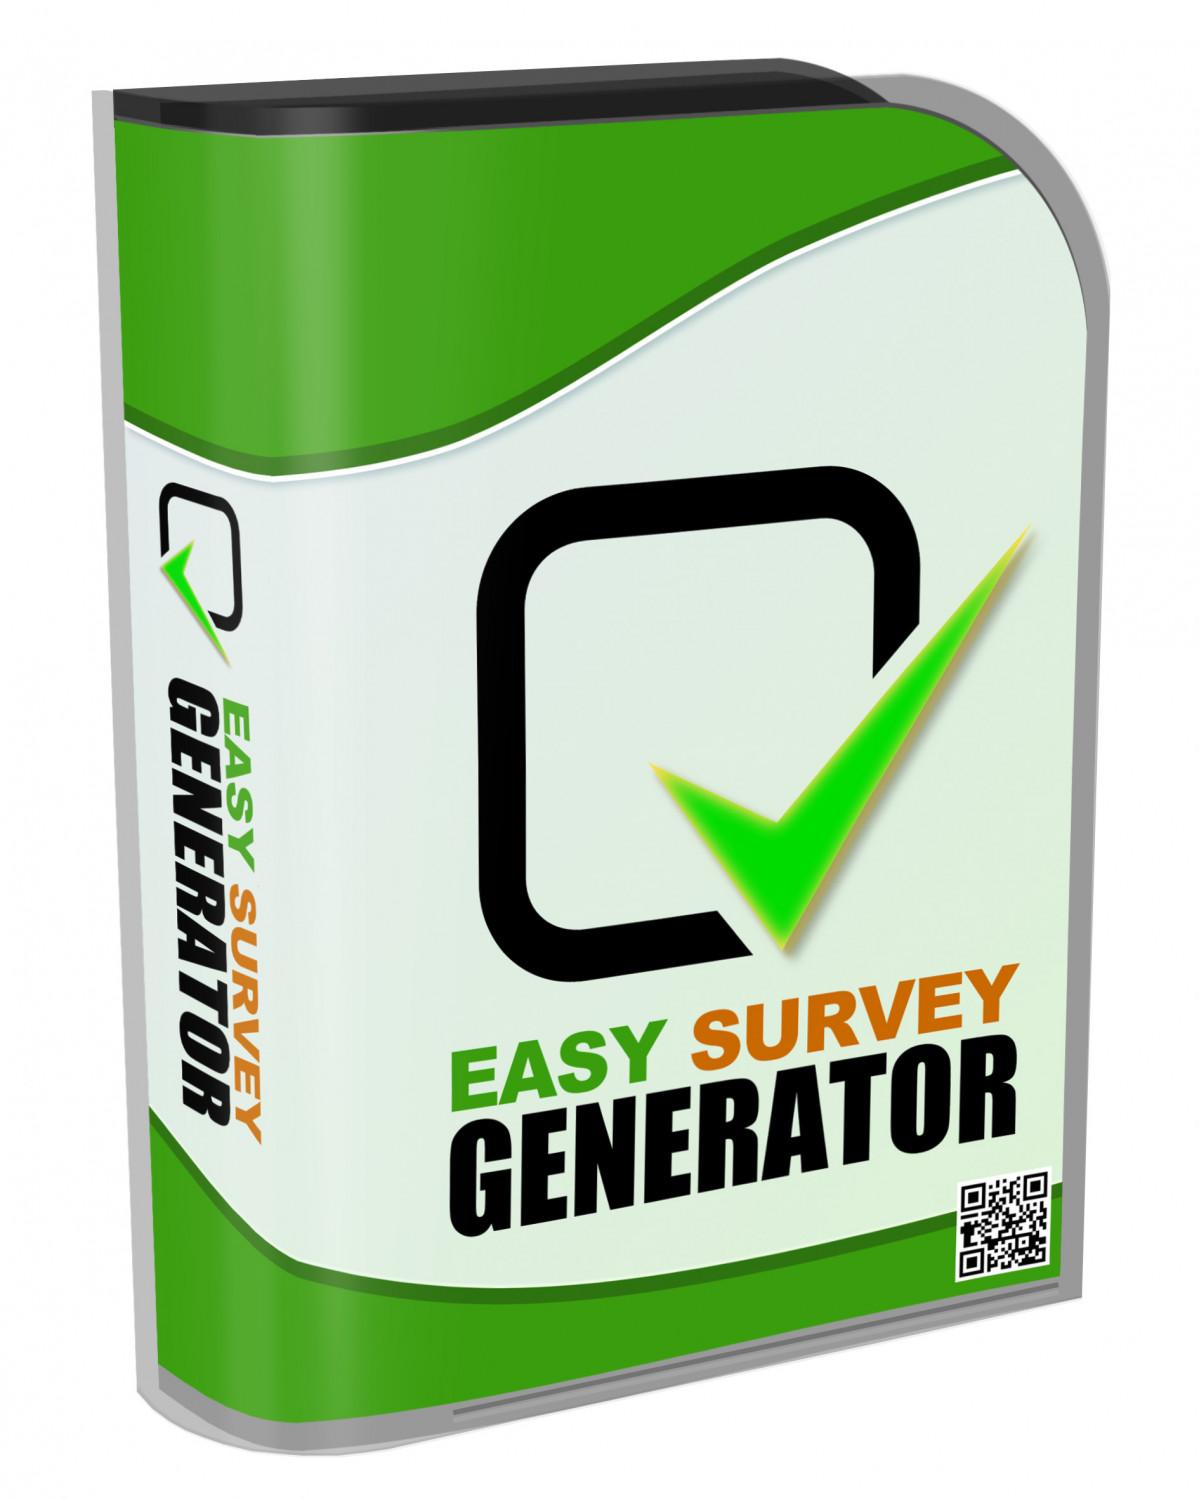 Easy Survey Generator - Instant Download Software - Reseller Rights